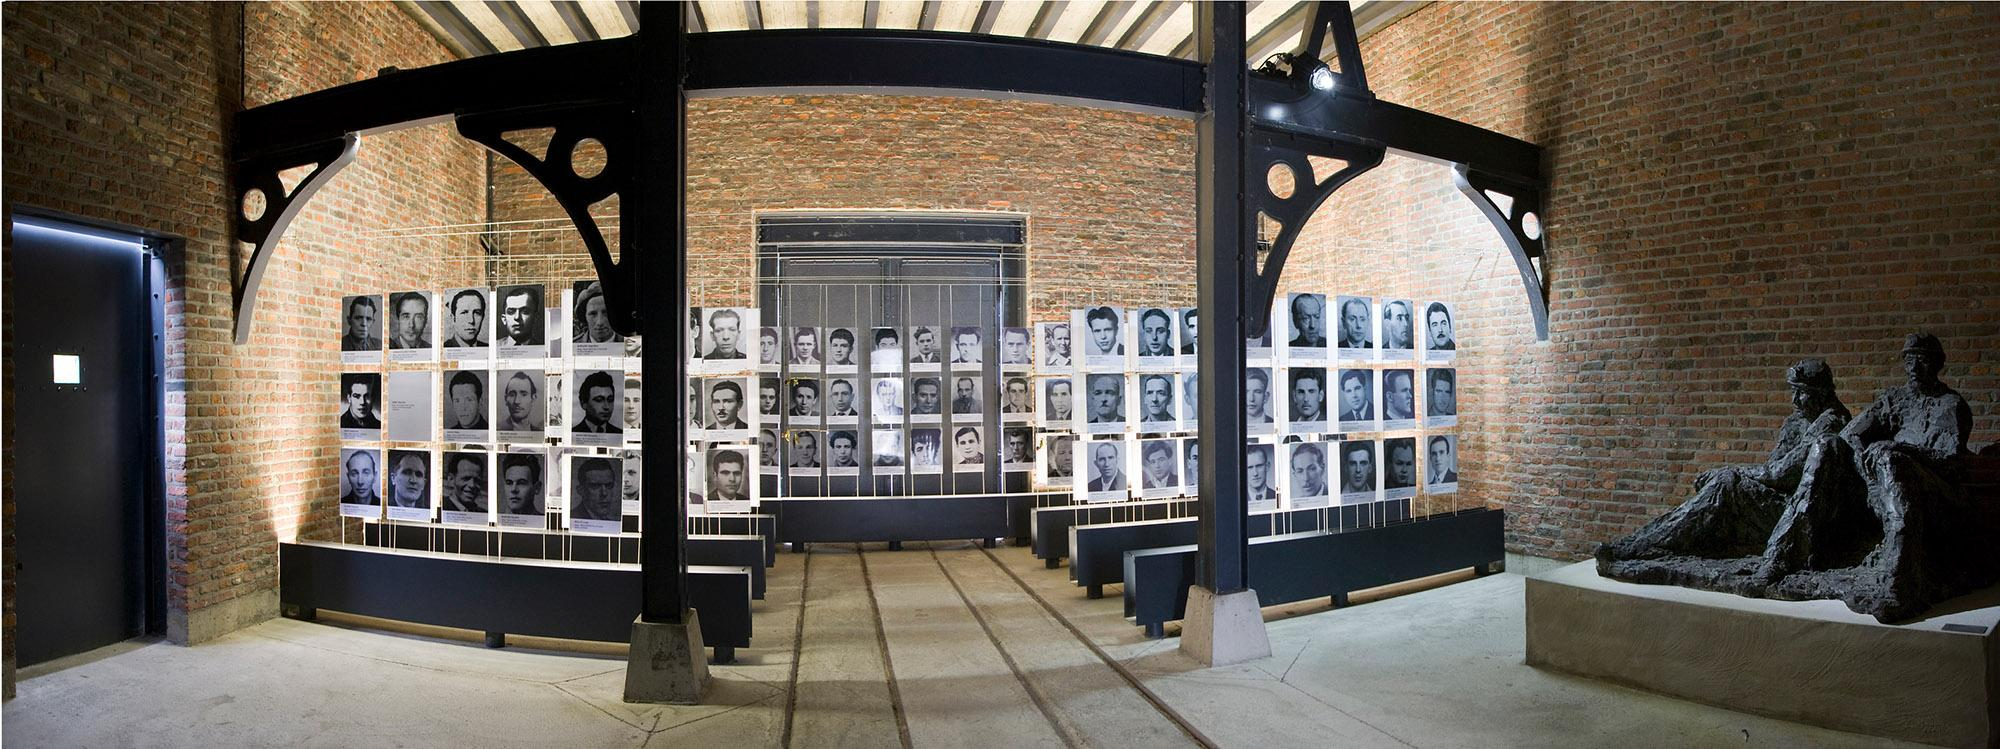 The memorial dedicated to the 262 victims of the Bois du Cazier catastrophe makes the industrial revolution more human for visitors. – © Ville de Charleroi